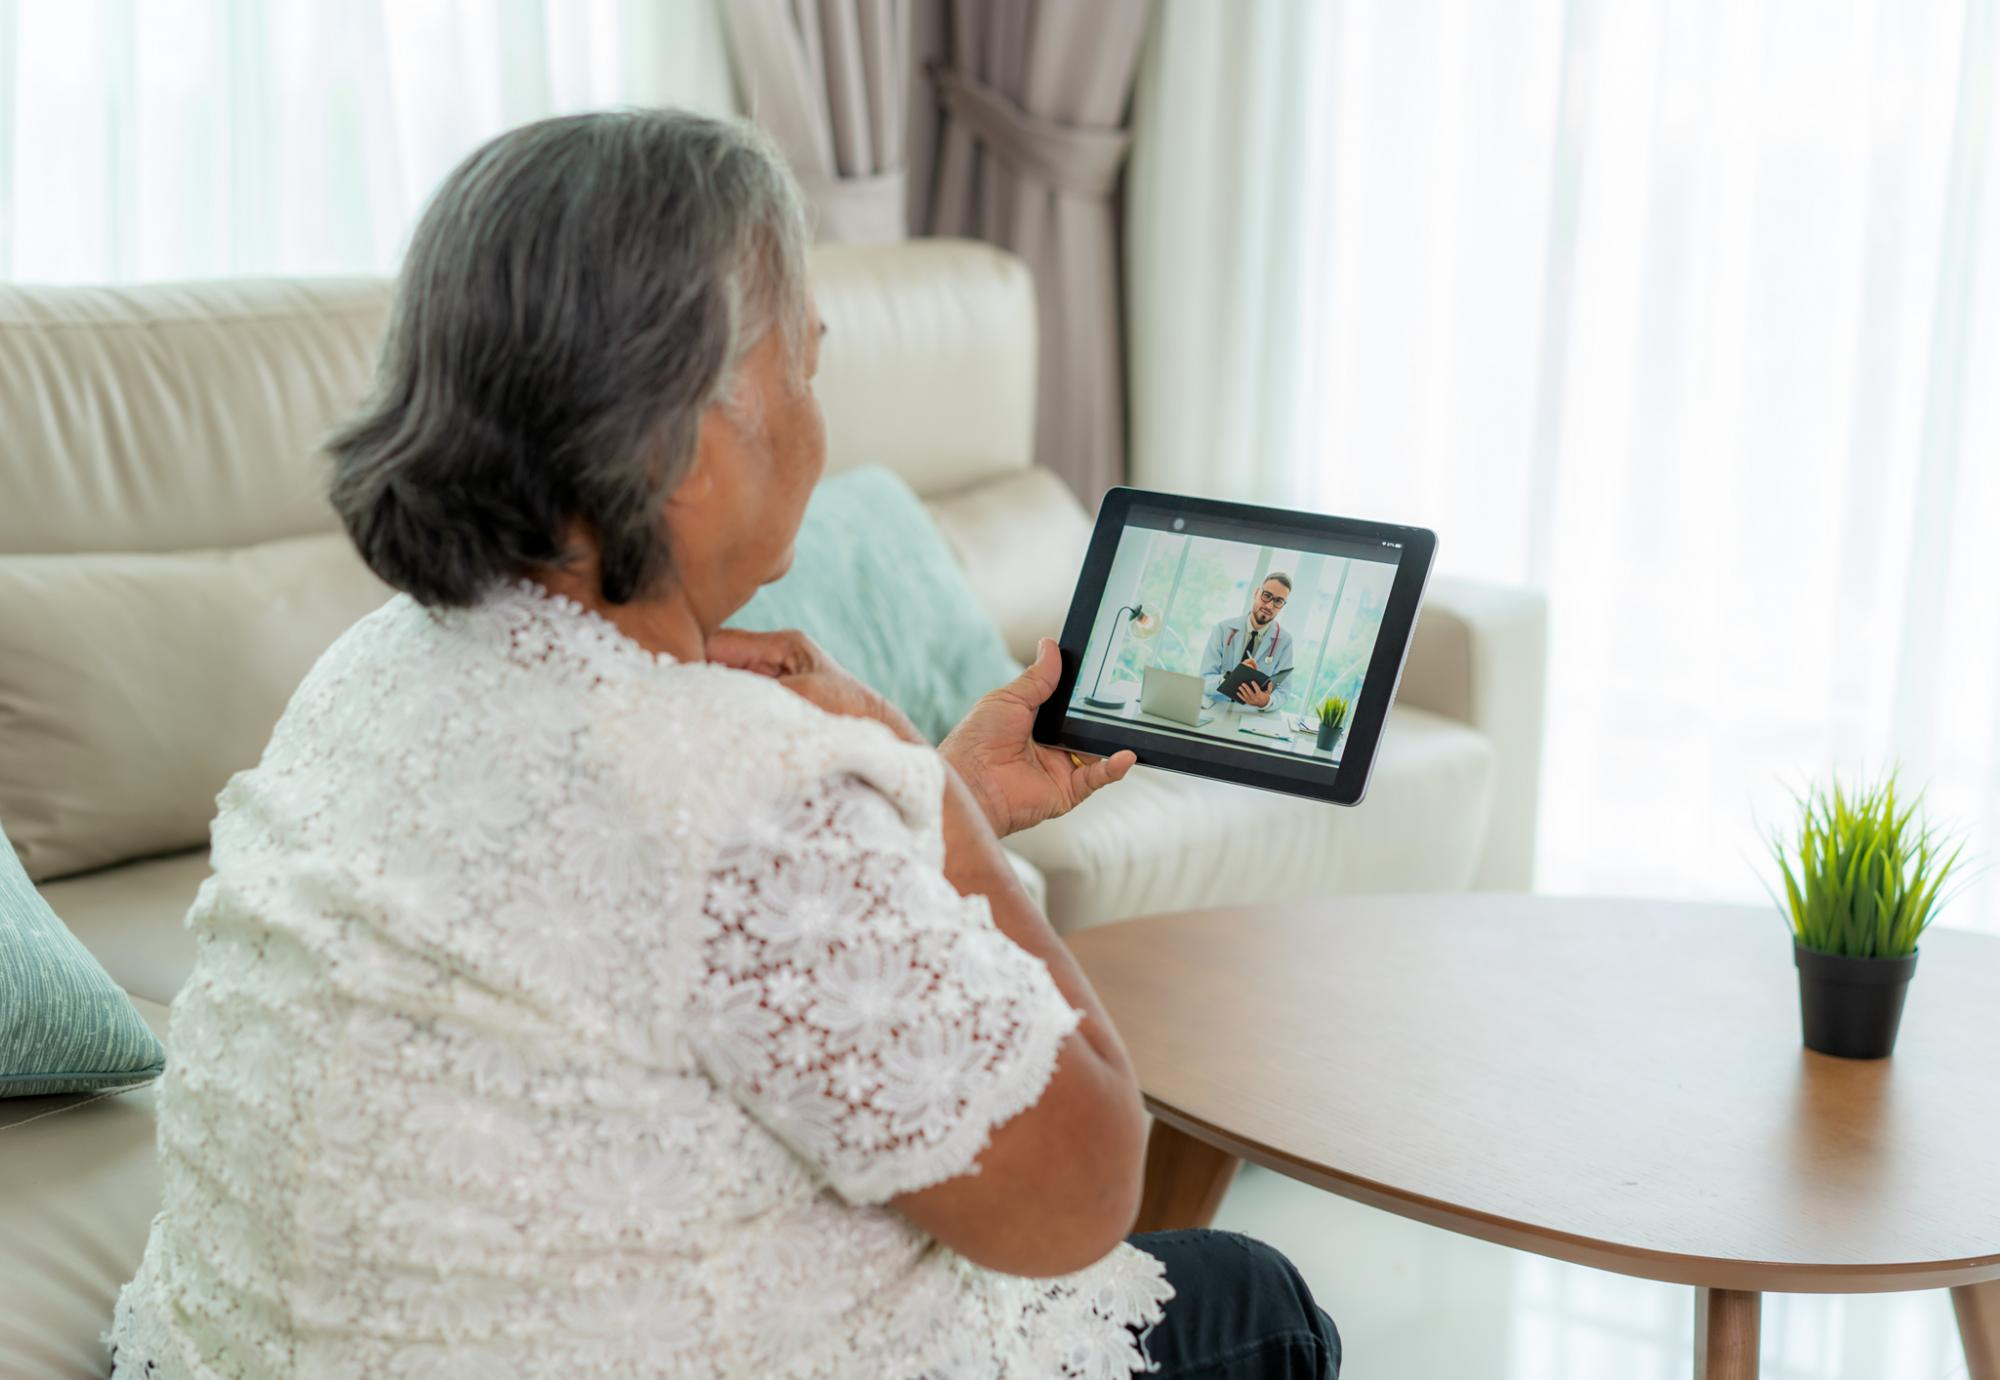 Elderly woman in conversation with a doctor on a tablet PC